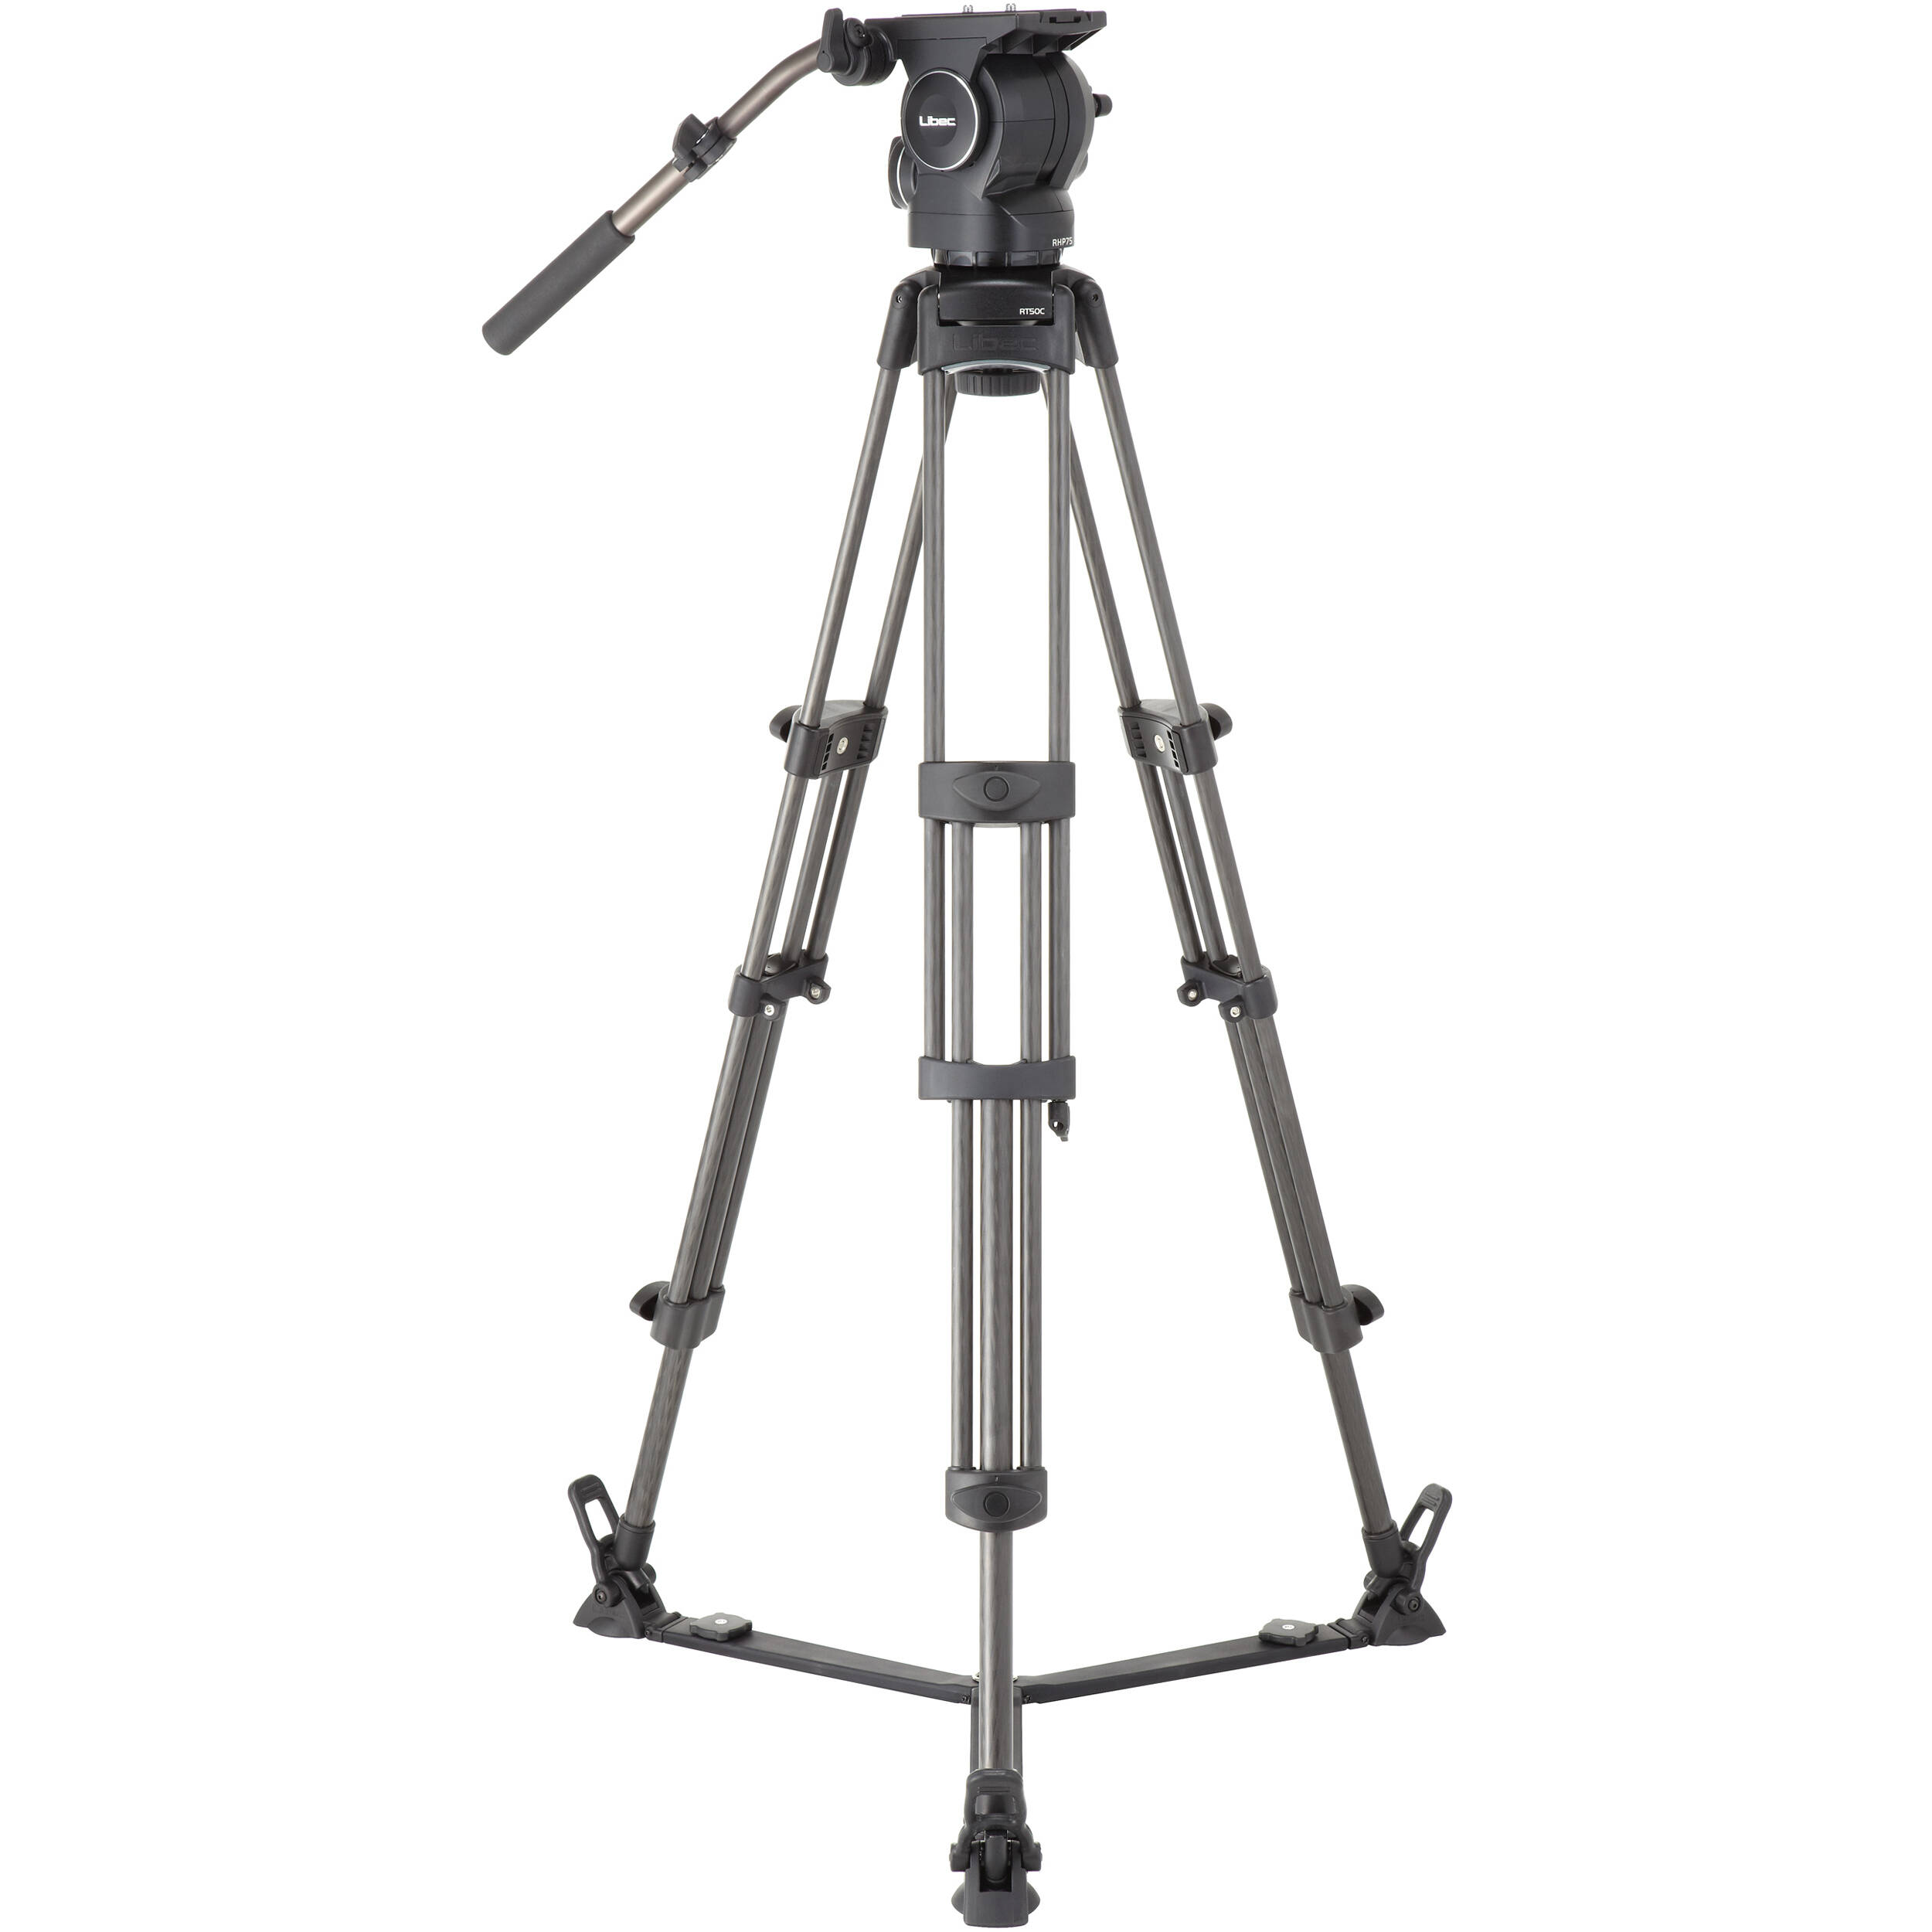 Libec Rsp 750c Professional Carbon Piping Tripod System Rsp 750c